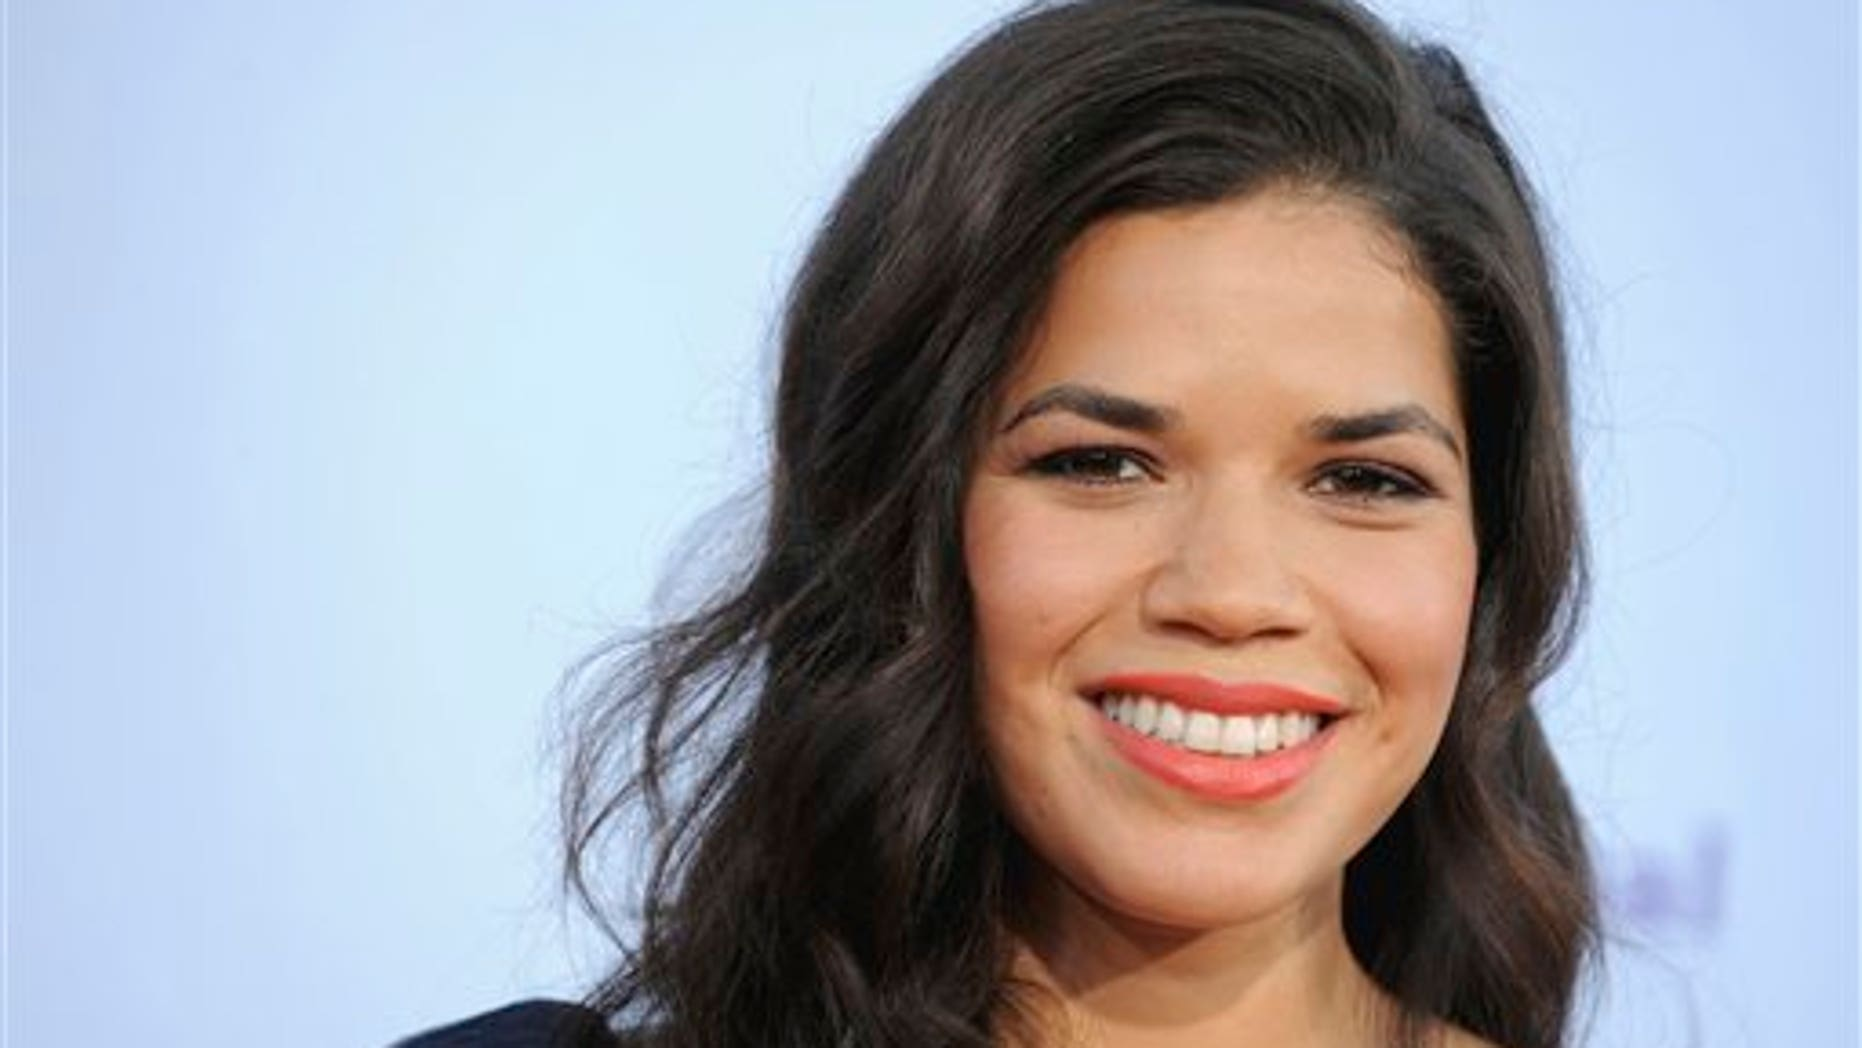 America Ferrera will participate at Social Good Summit with former co-star Alexis Bledel. (AP)